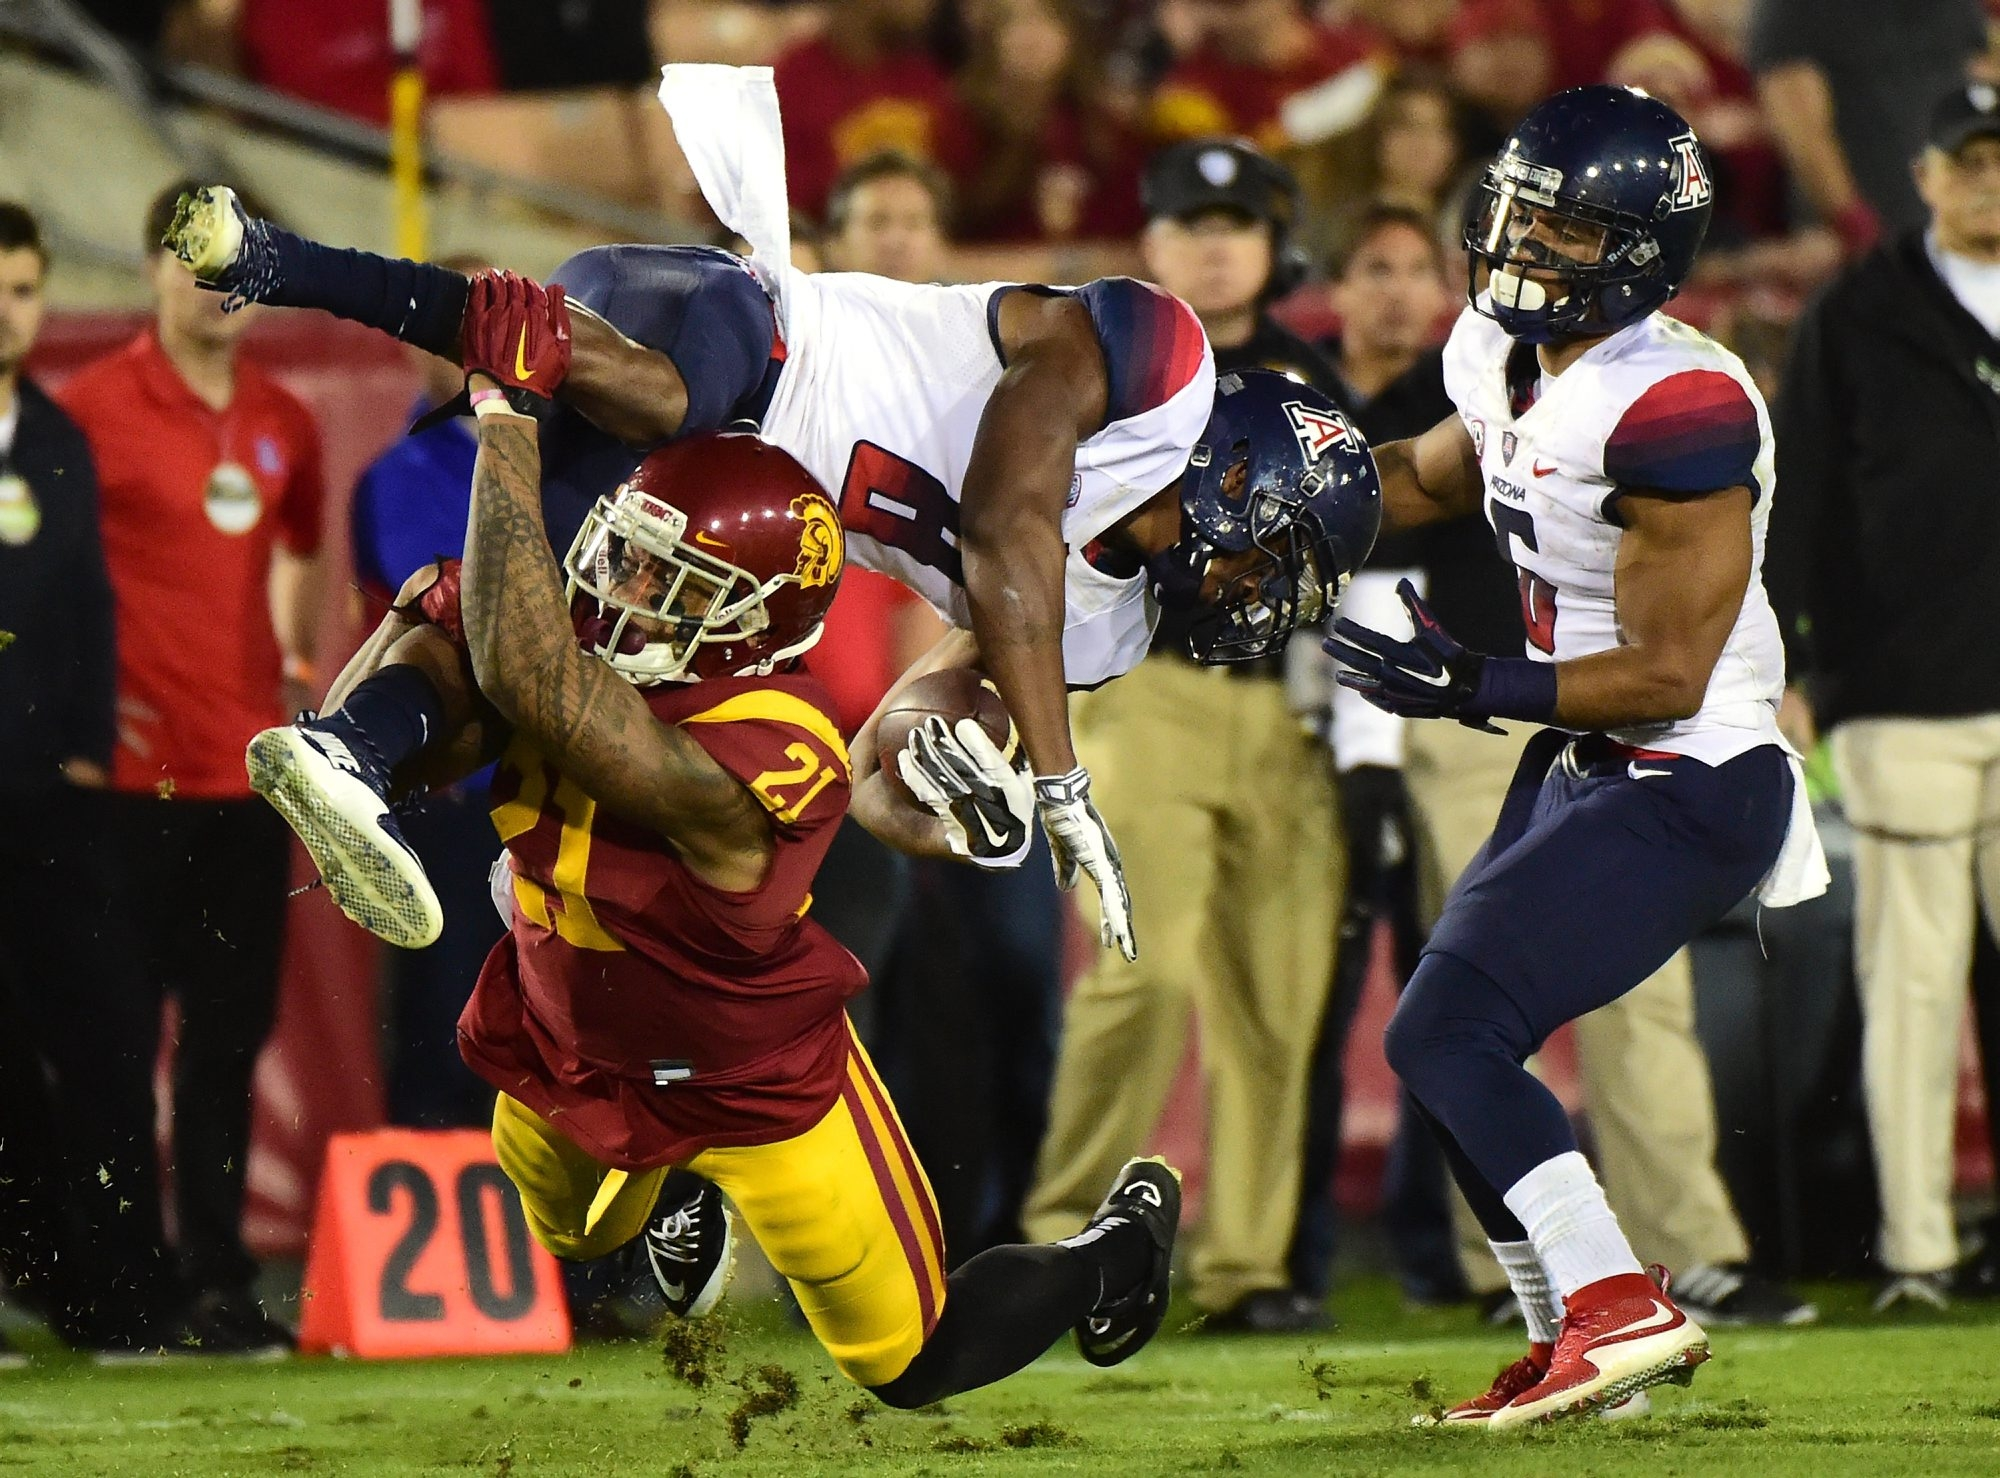 Su'a Cravens needs to bulk up if he's to play linebacker in the NFL, but he consistently made big plays while at USC.